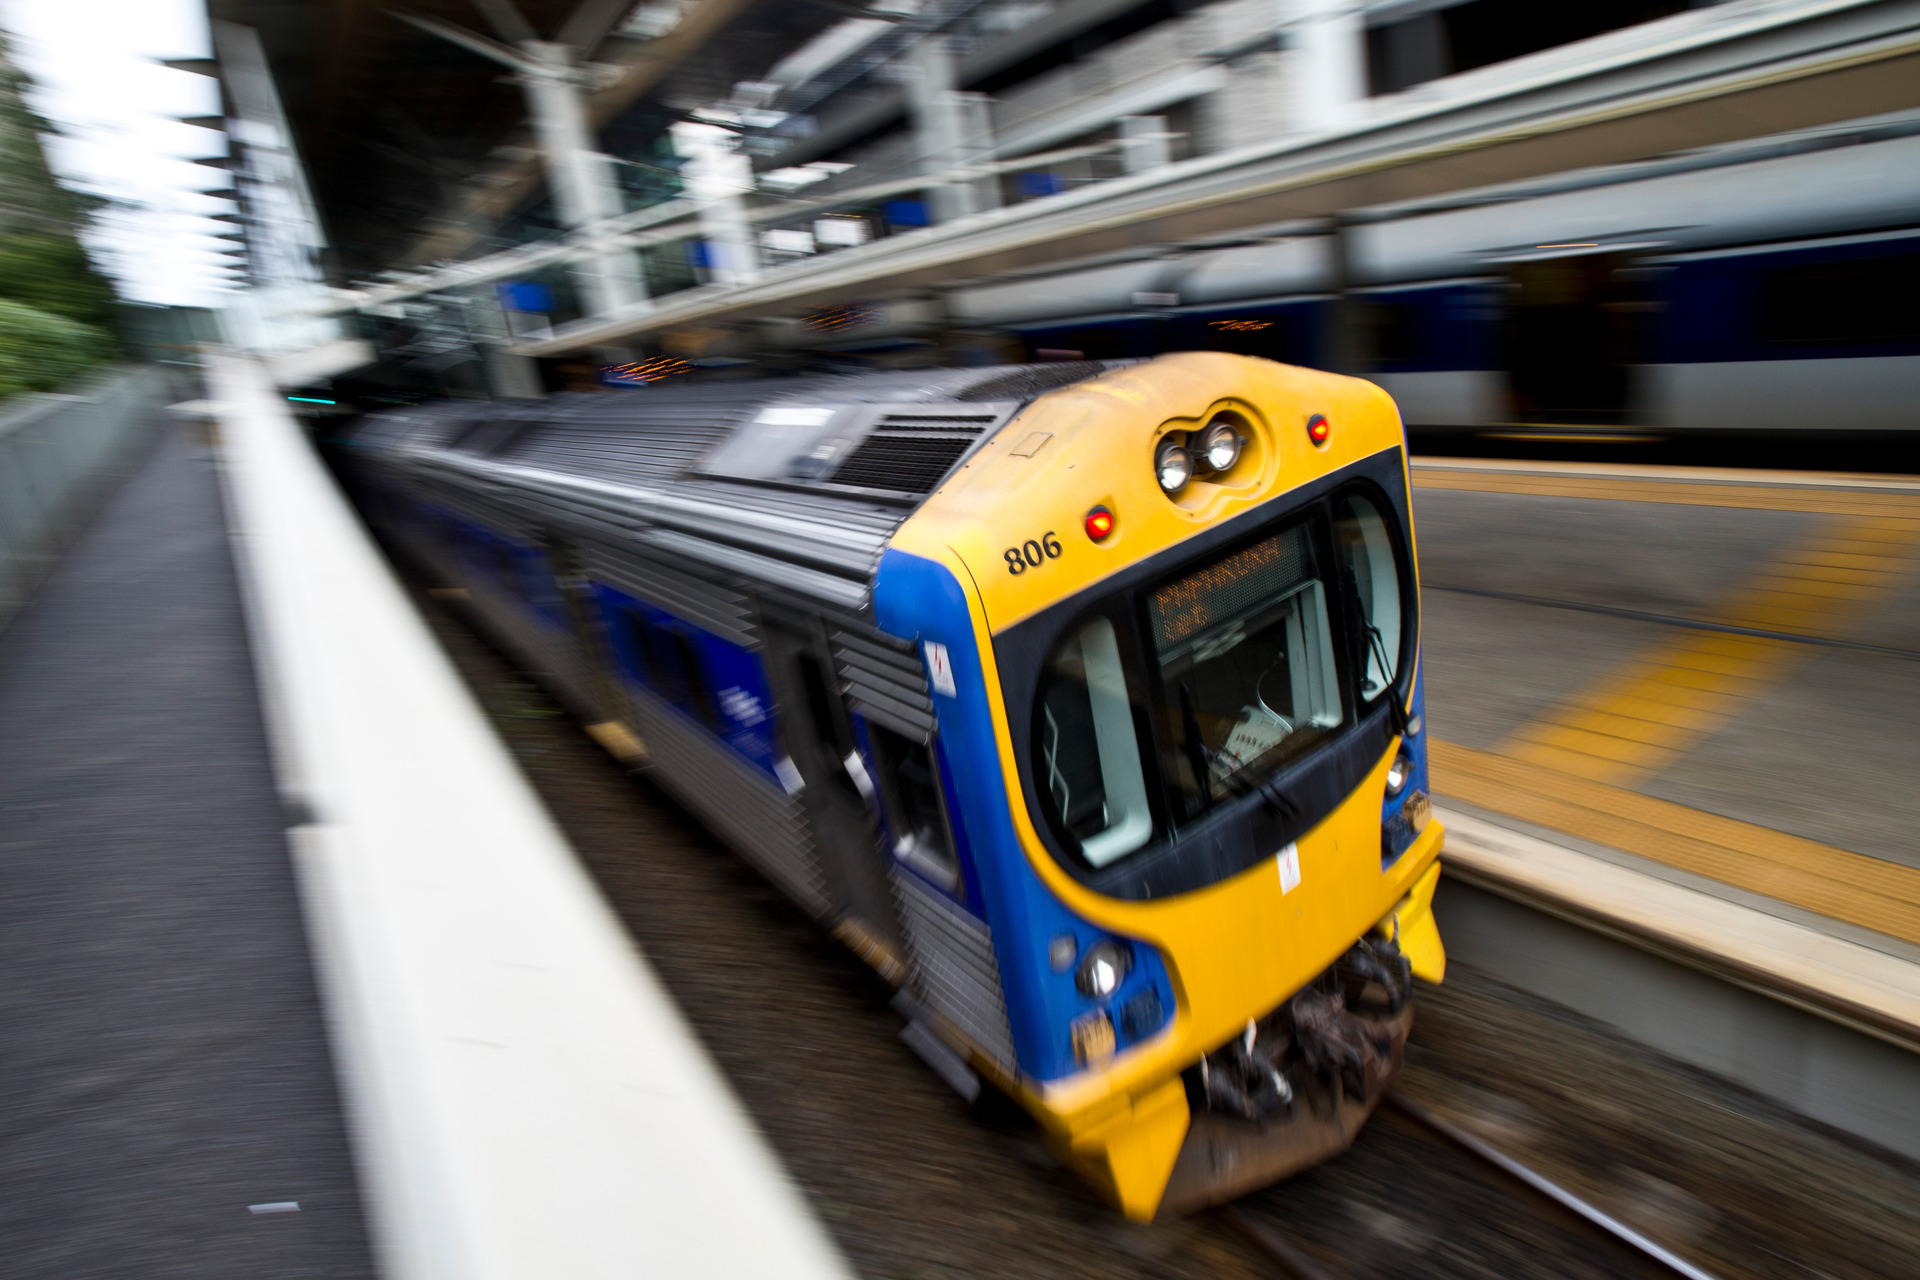 Fijian Indian who has lived in New Zealand most of her life abused by man on Auckland train